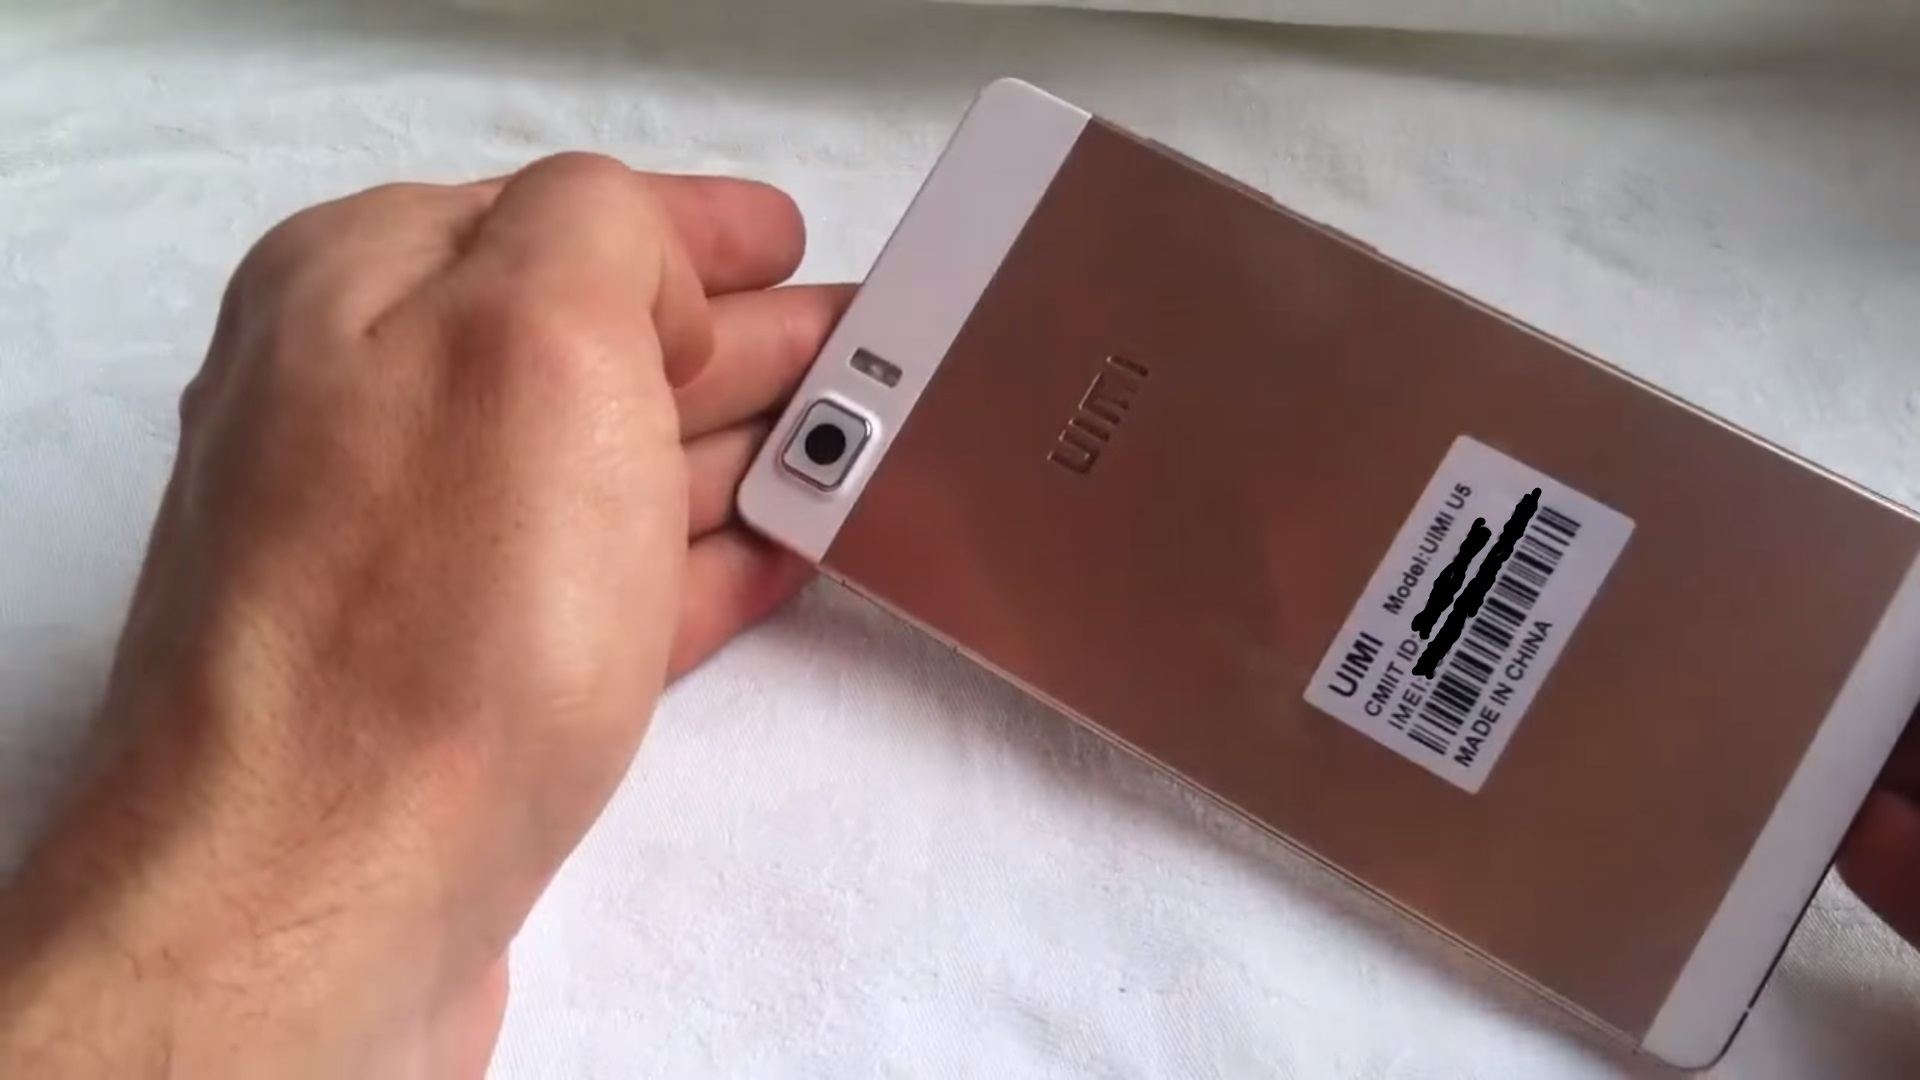 UIMI U5 Held in hands, golden color, back side view, white background.